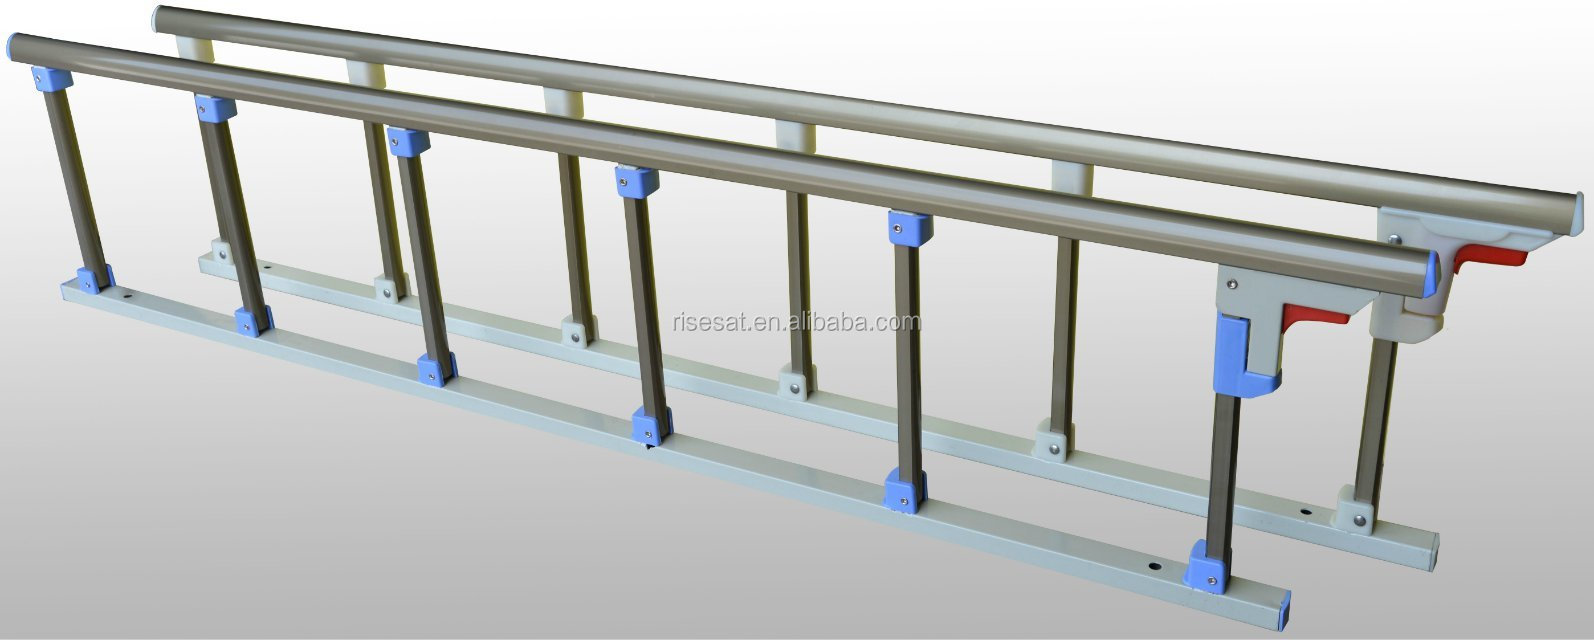 Stainless Steel Hospital Bed Side Rails